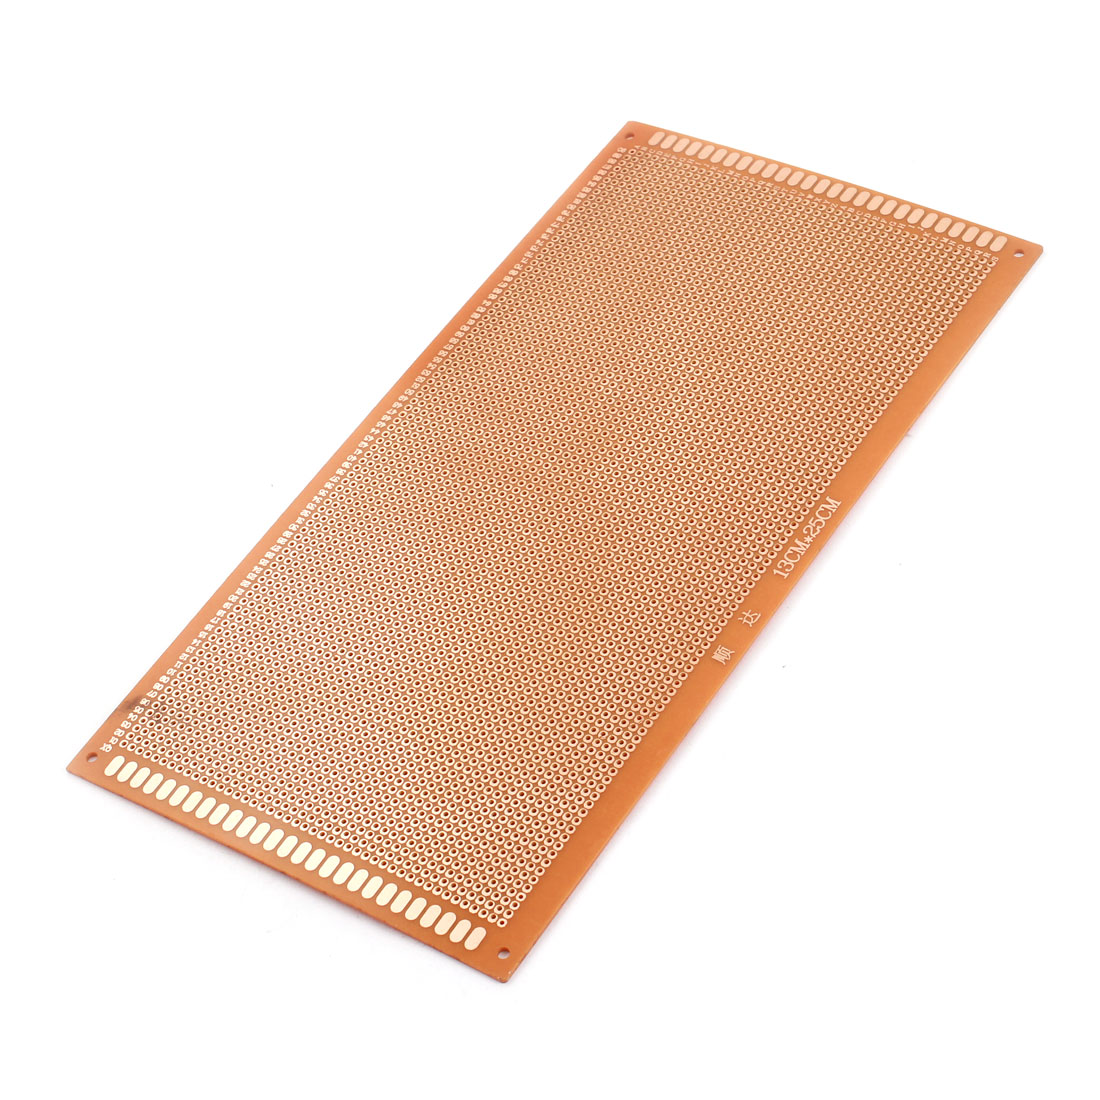 25cm x 13cm One Side Prototype PCB Circuit Board Universal Stripboard Breadboard 2.54mm Pitch